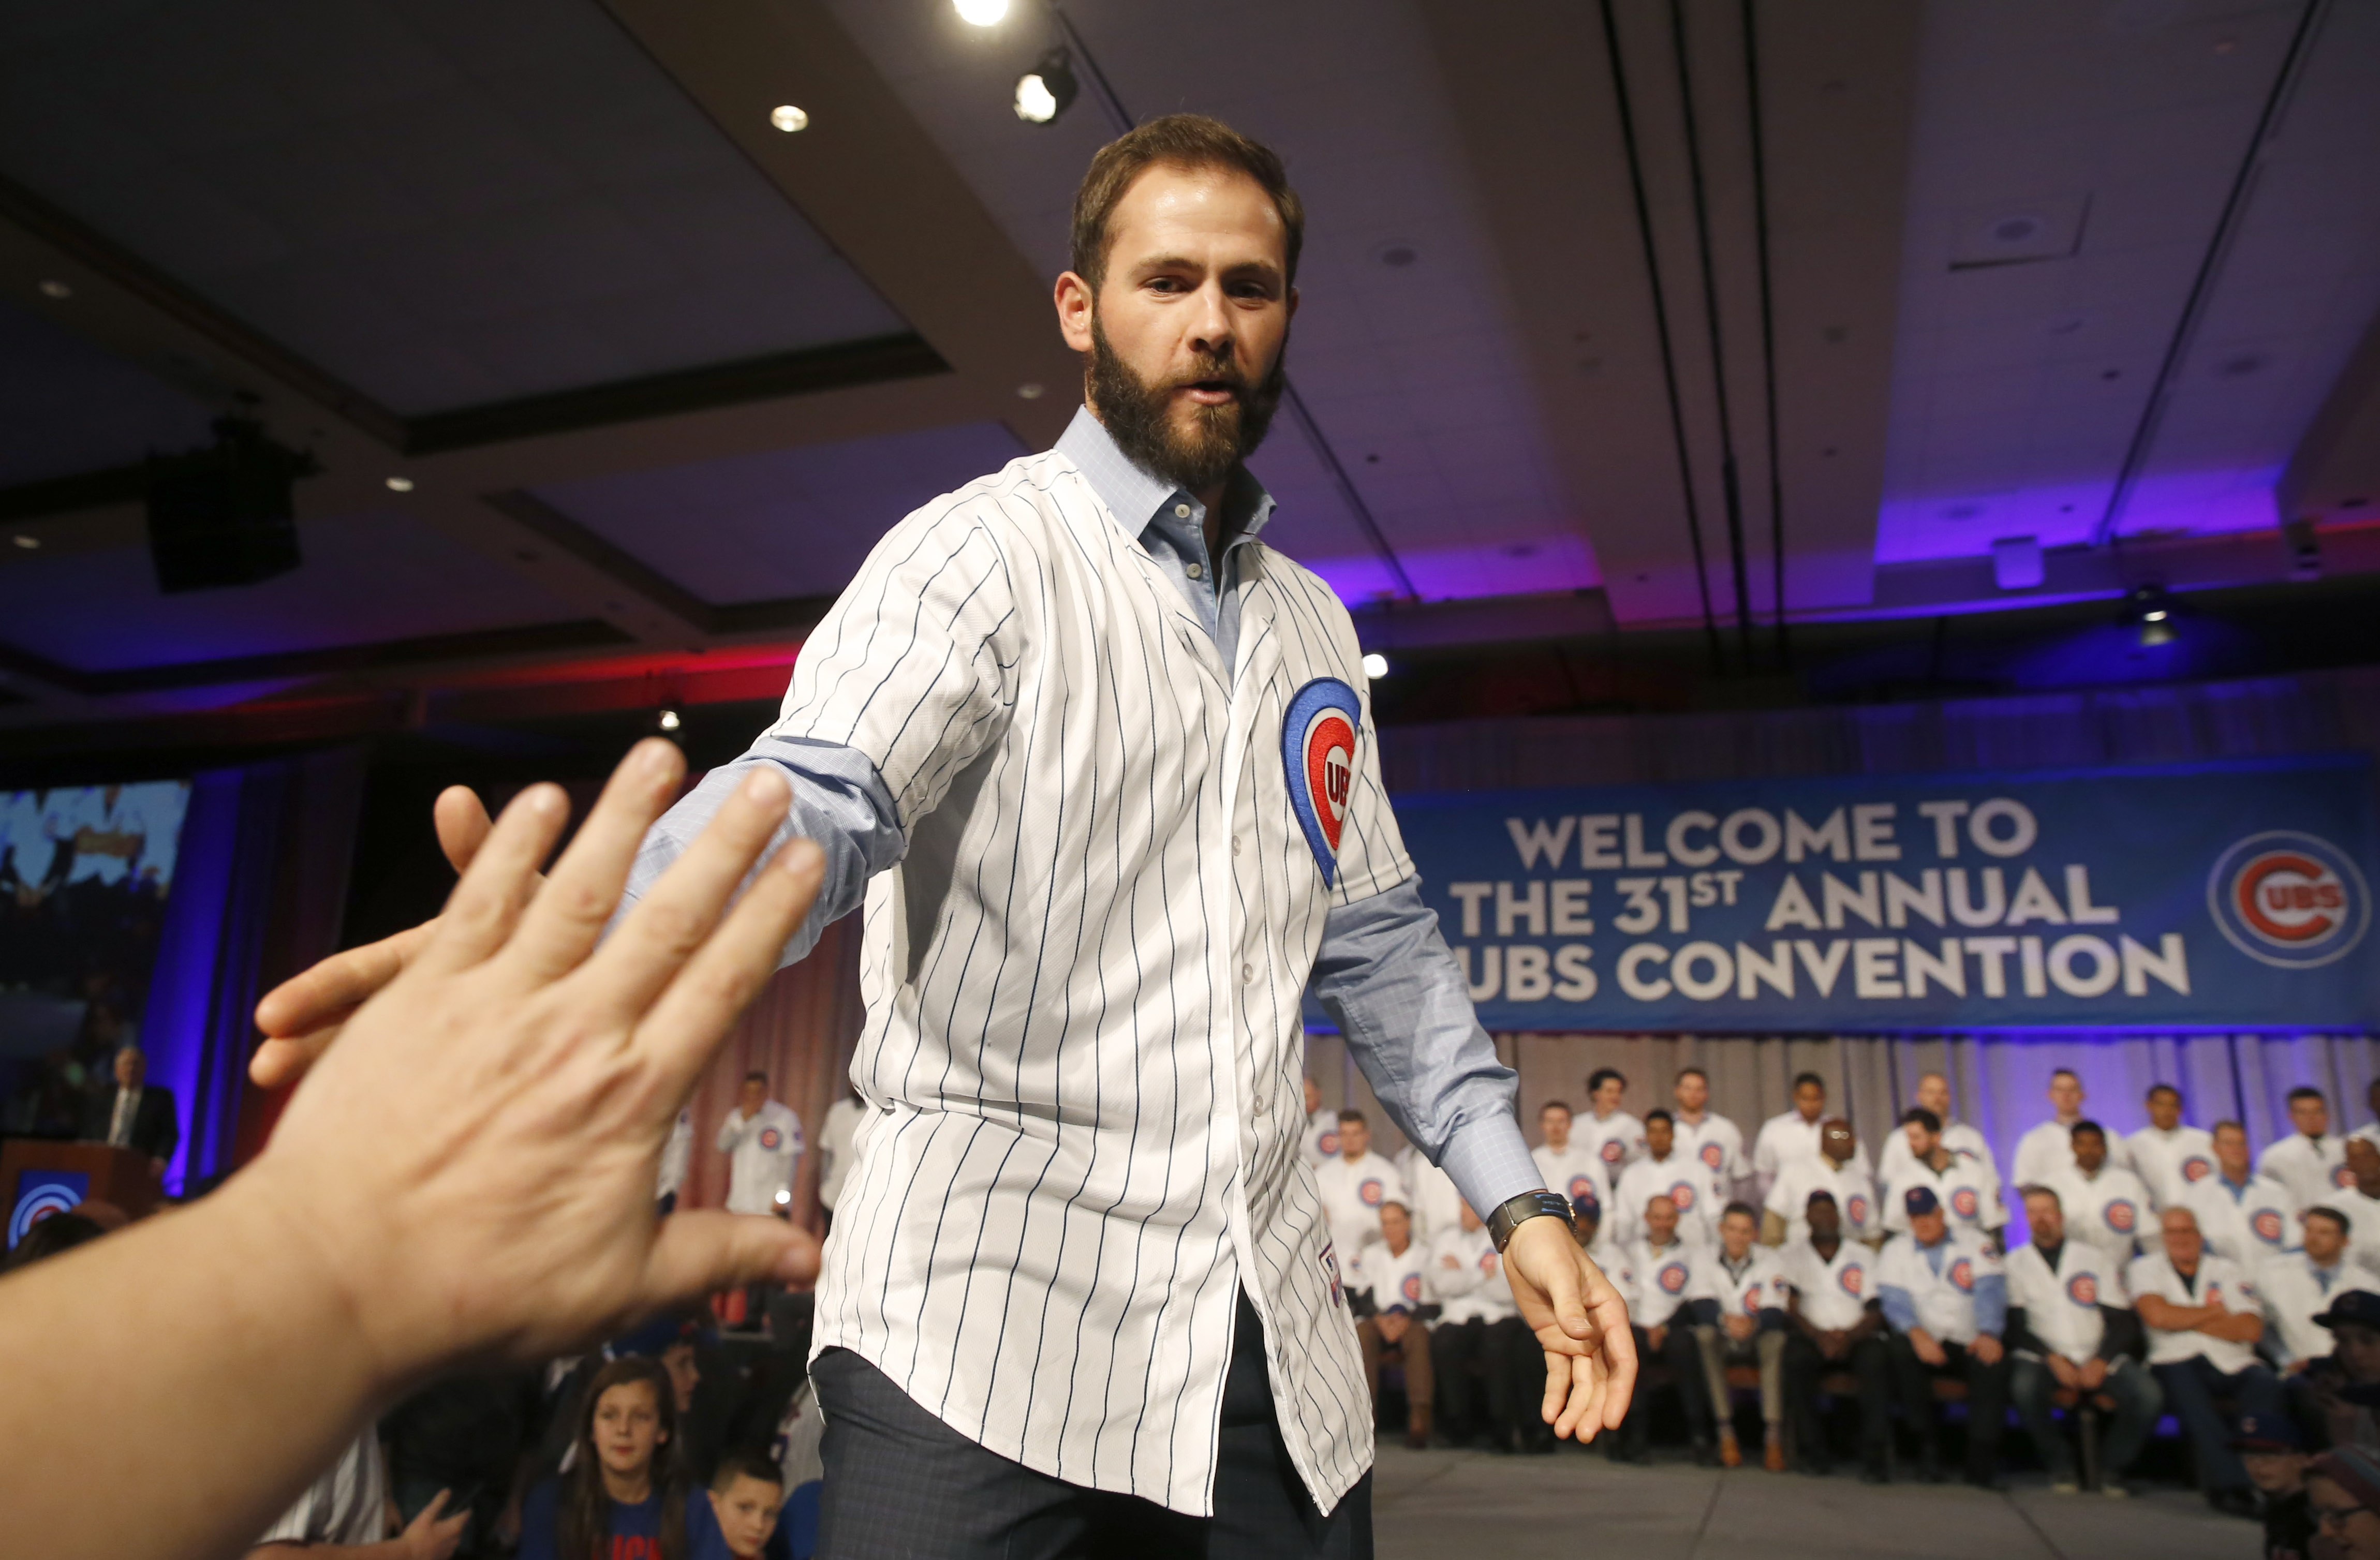 Chicago Cubs starting pitcher Jake Arrieta slaps hands with a fan during the team's annual baseball convention Friday, Jan. 15, 2016, in Chicago. (AP Photo/Charles Rex Arbogast)